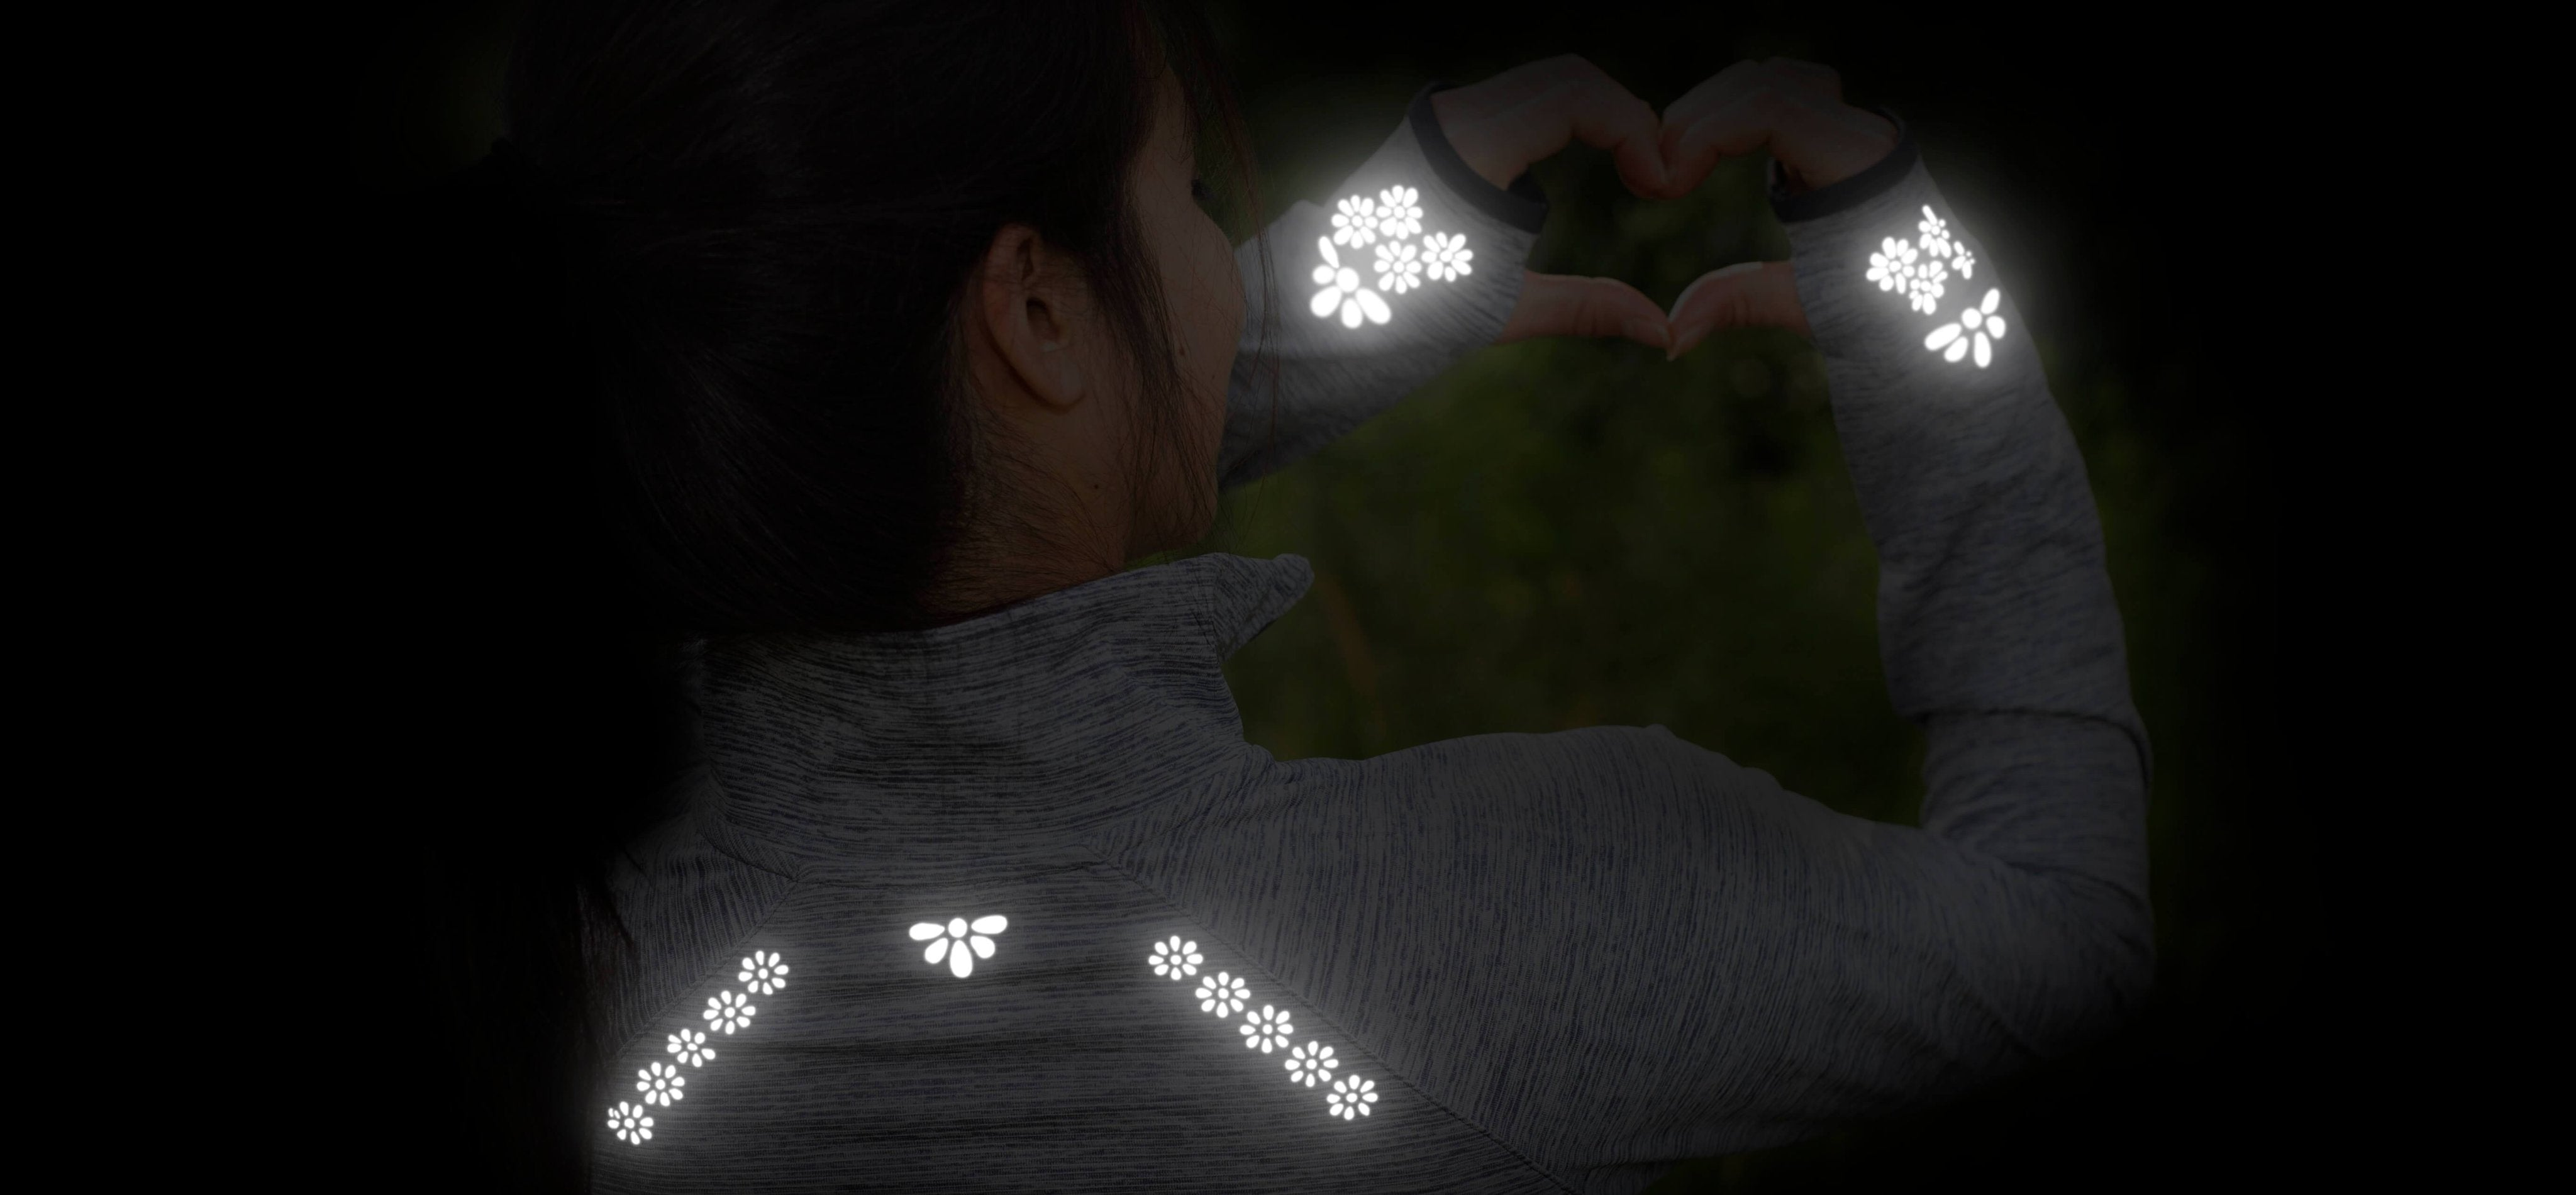 High visibility reflective iron-on decals. Made with 3M™ Scotchlite™ Reflective Material. Feel safer, hiking, walking, running. Create your own reflective outfit, apparel, activewear. Customizable, easy to apply, do it yourself. Noktillu Flower Petals design.